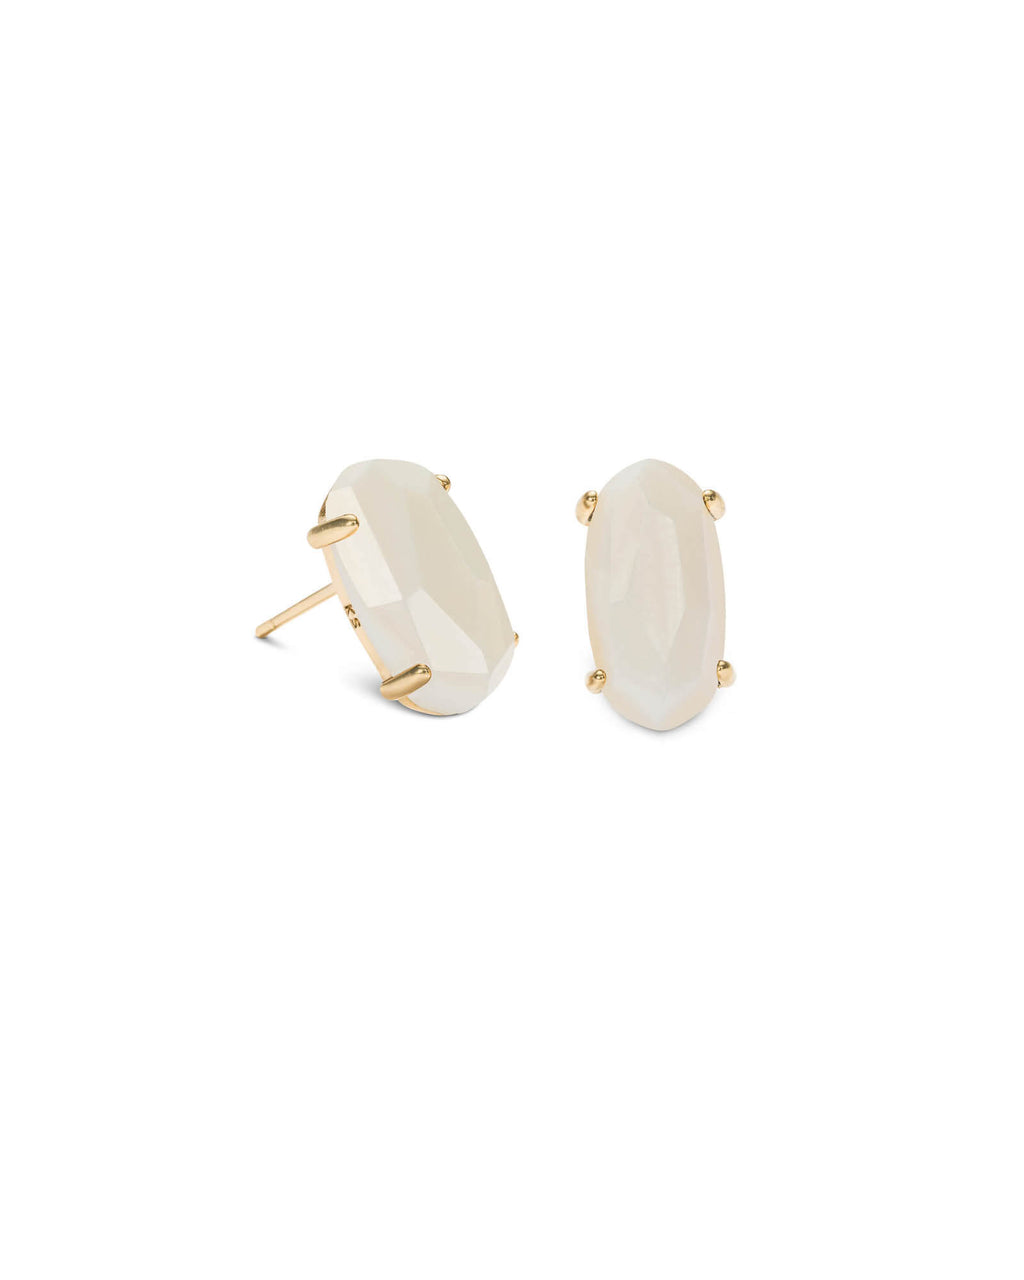 KENDRA SCOTT Betty Gold Stud Earrings - White Mother of Pearl